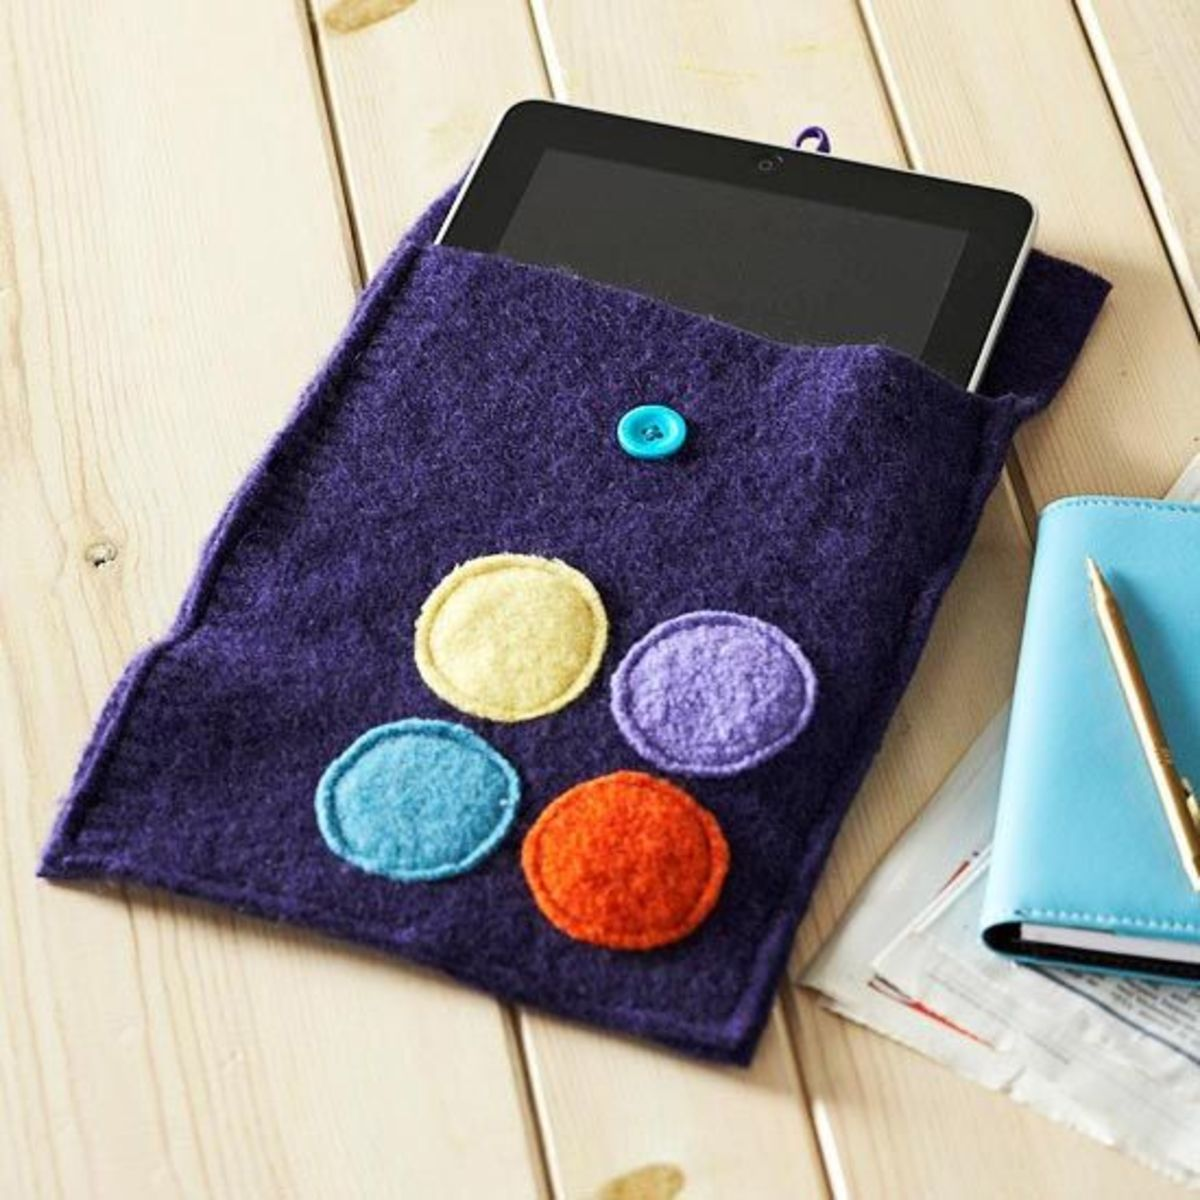 Felt Crafts - Make an iPad cover